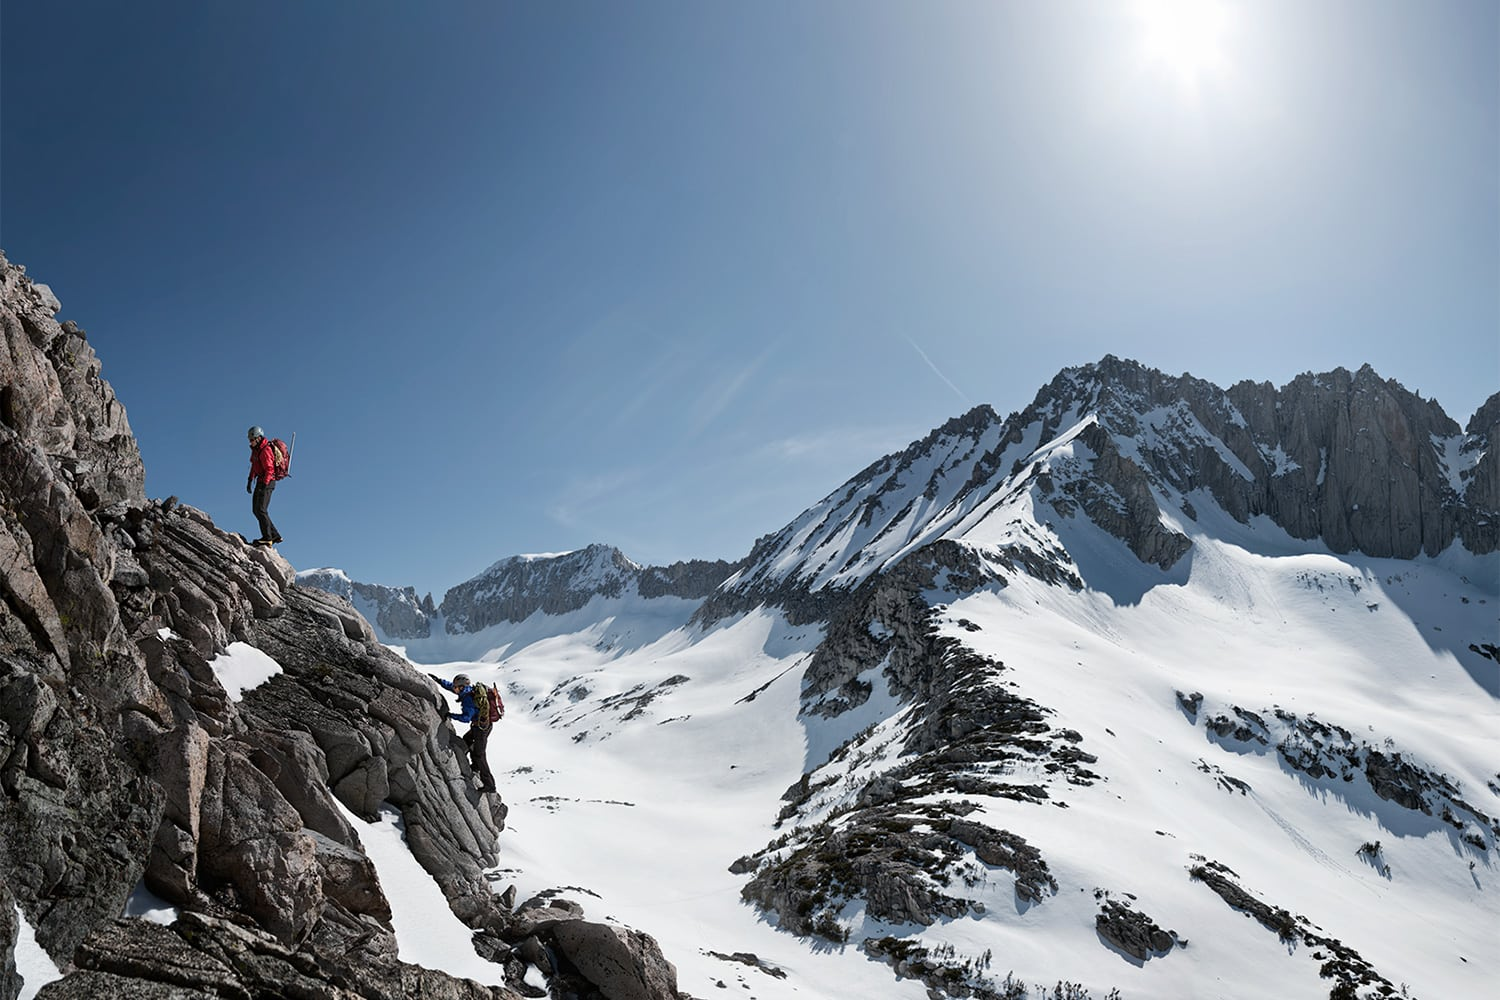 Athlete-two-male-mountaineering-alpinism-athletes-climbing-in-mountains-Rod-McLean